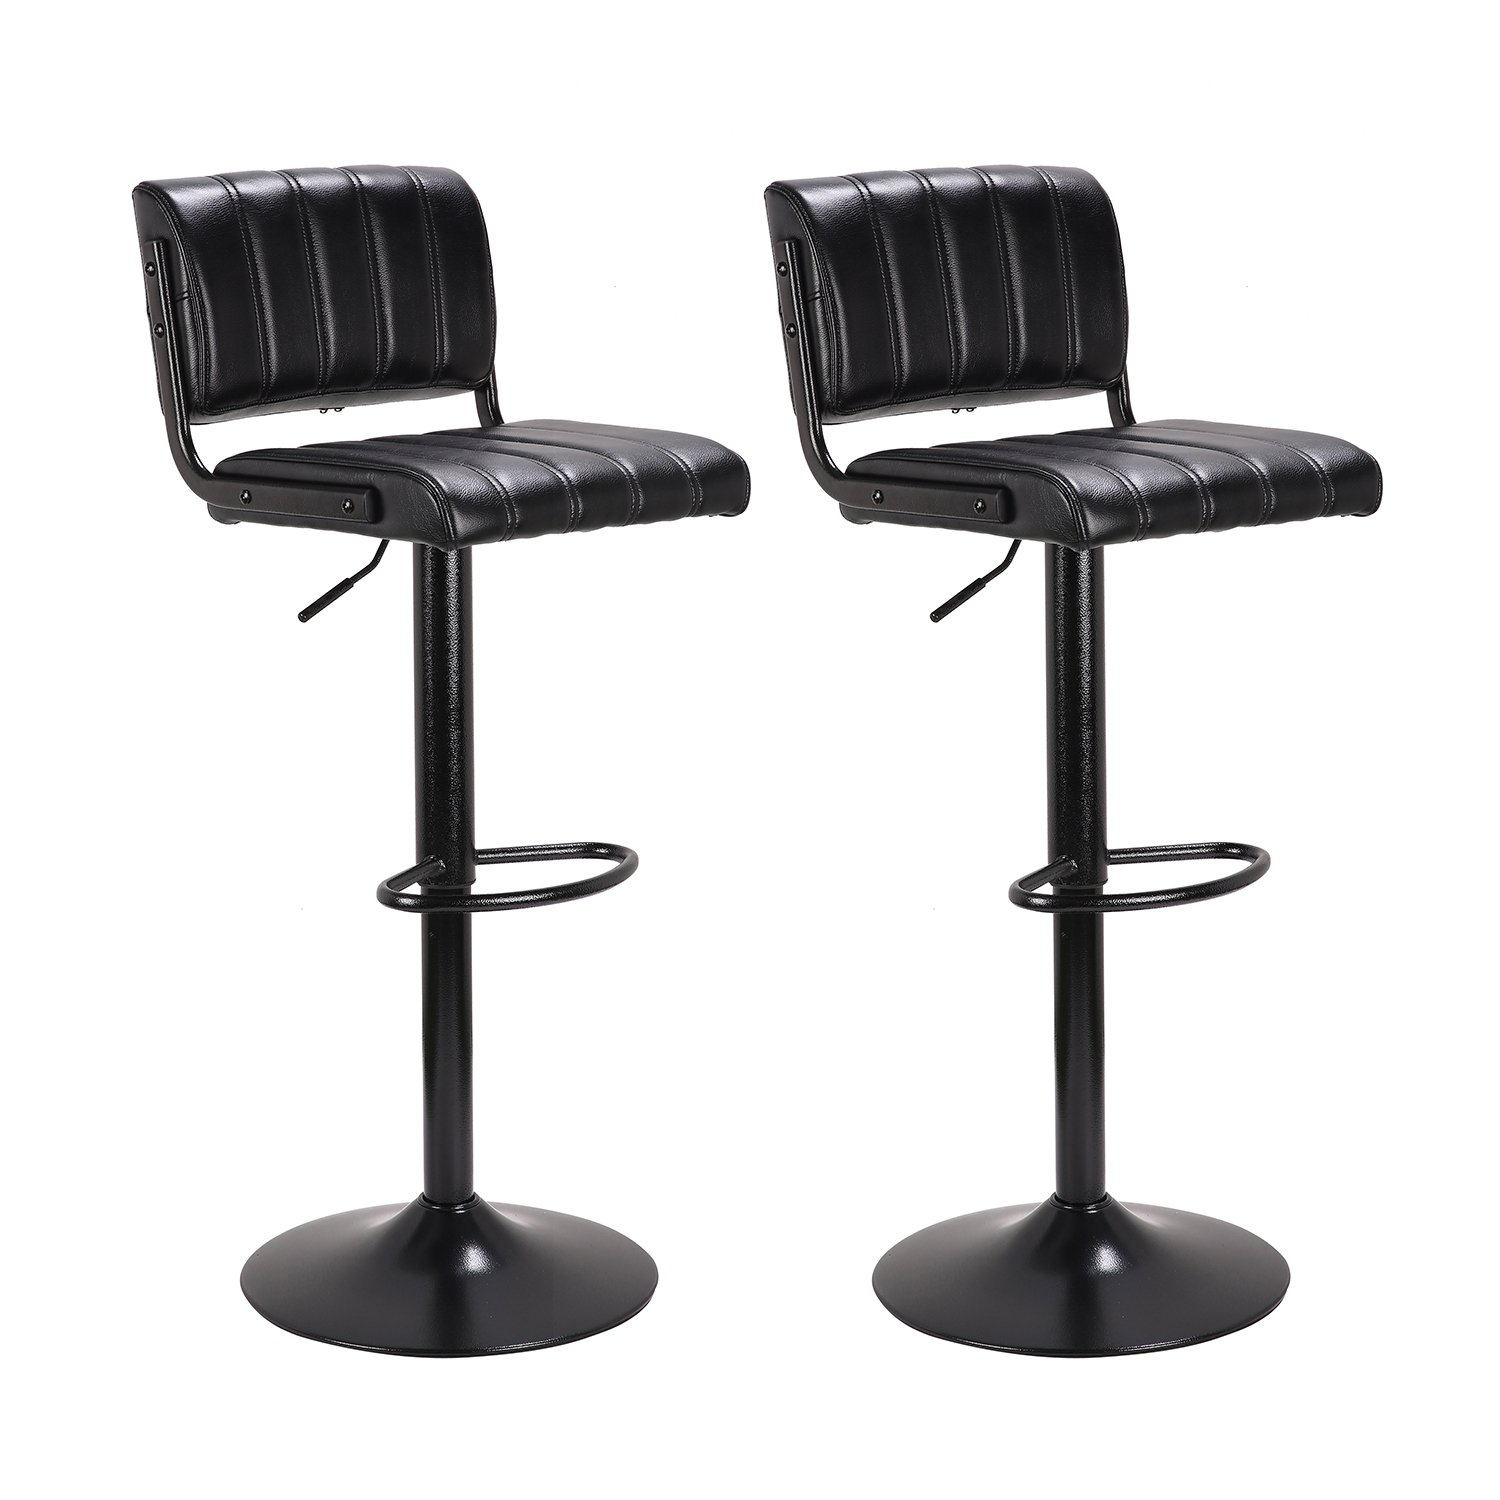 "LCH 24"" - 33"" PU Leather Adjustable Bar Stools, Stylish Counter Height Swivel Bar Stool Chairs with Backrest, Set of 2, Black"